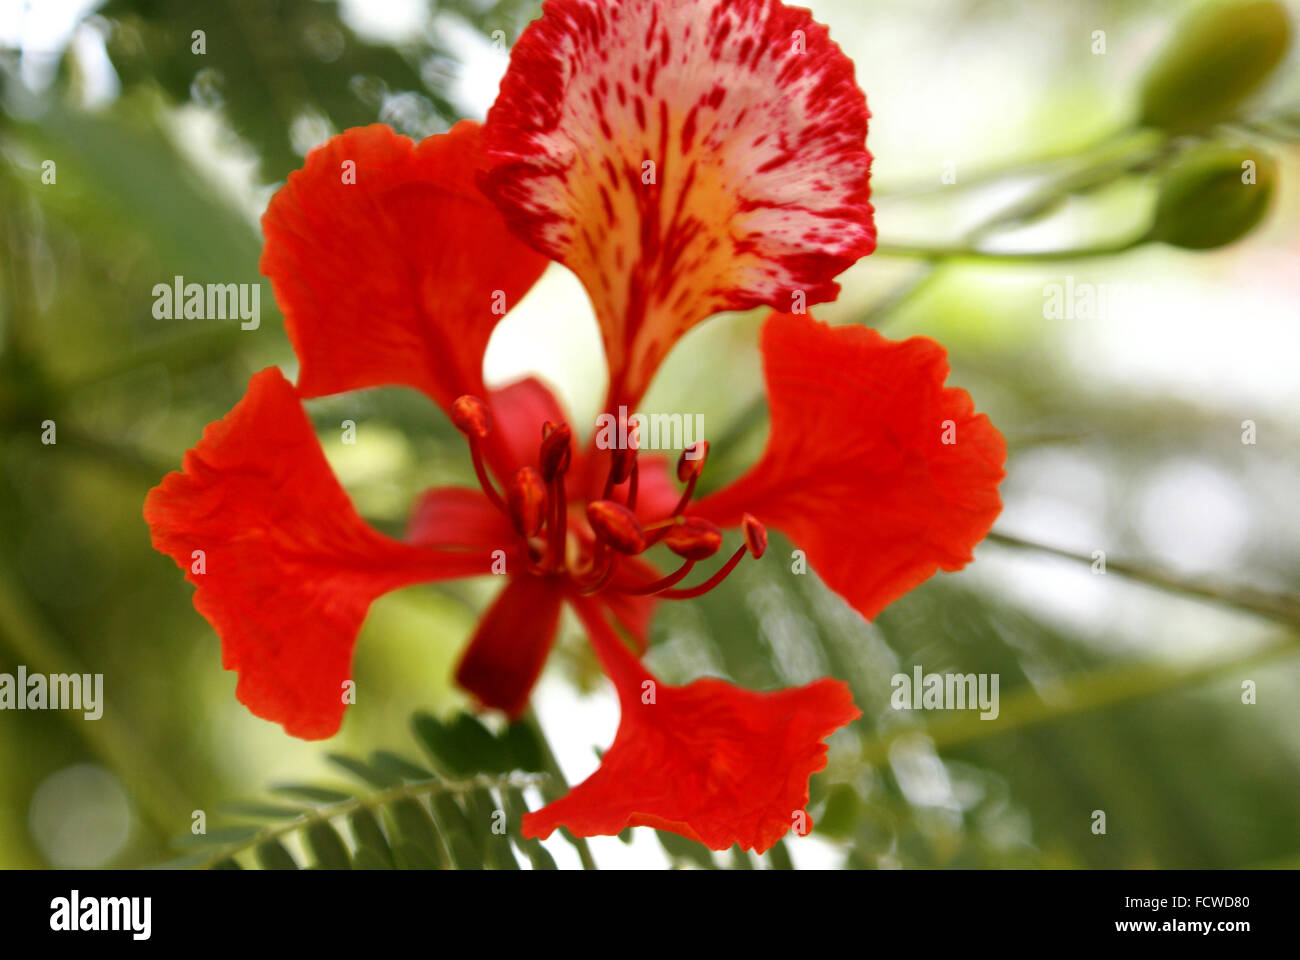 Delonix regia, Gulmohar, Royal Poinciana, deciduous ornamental tree with fern like leaves and red spotted flowers, - Stock Image